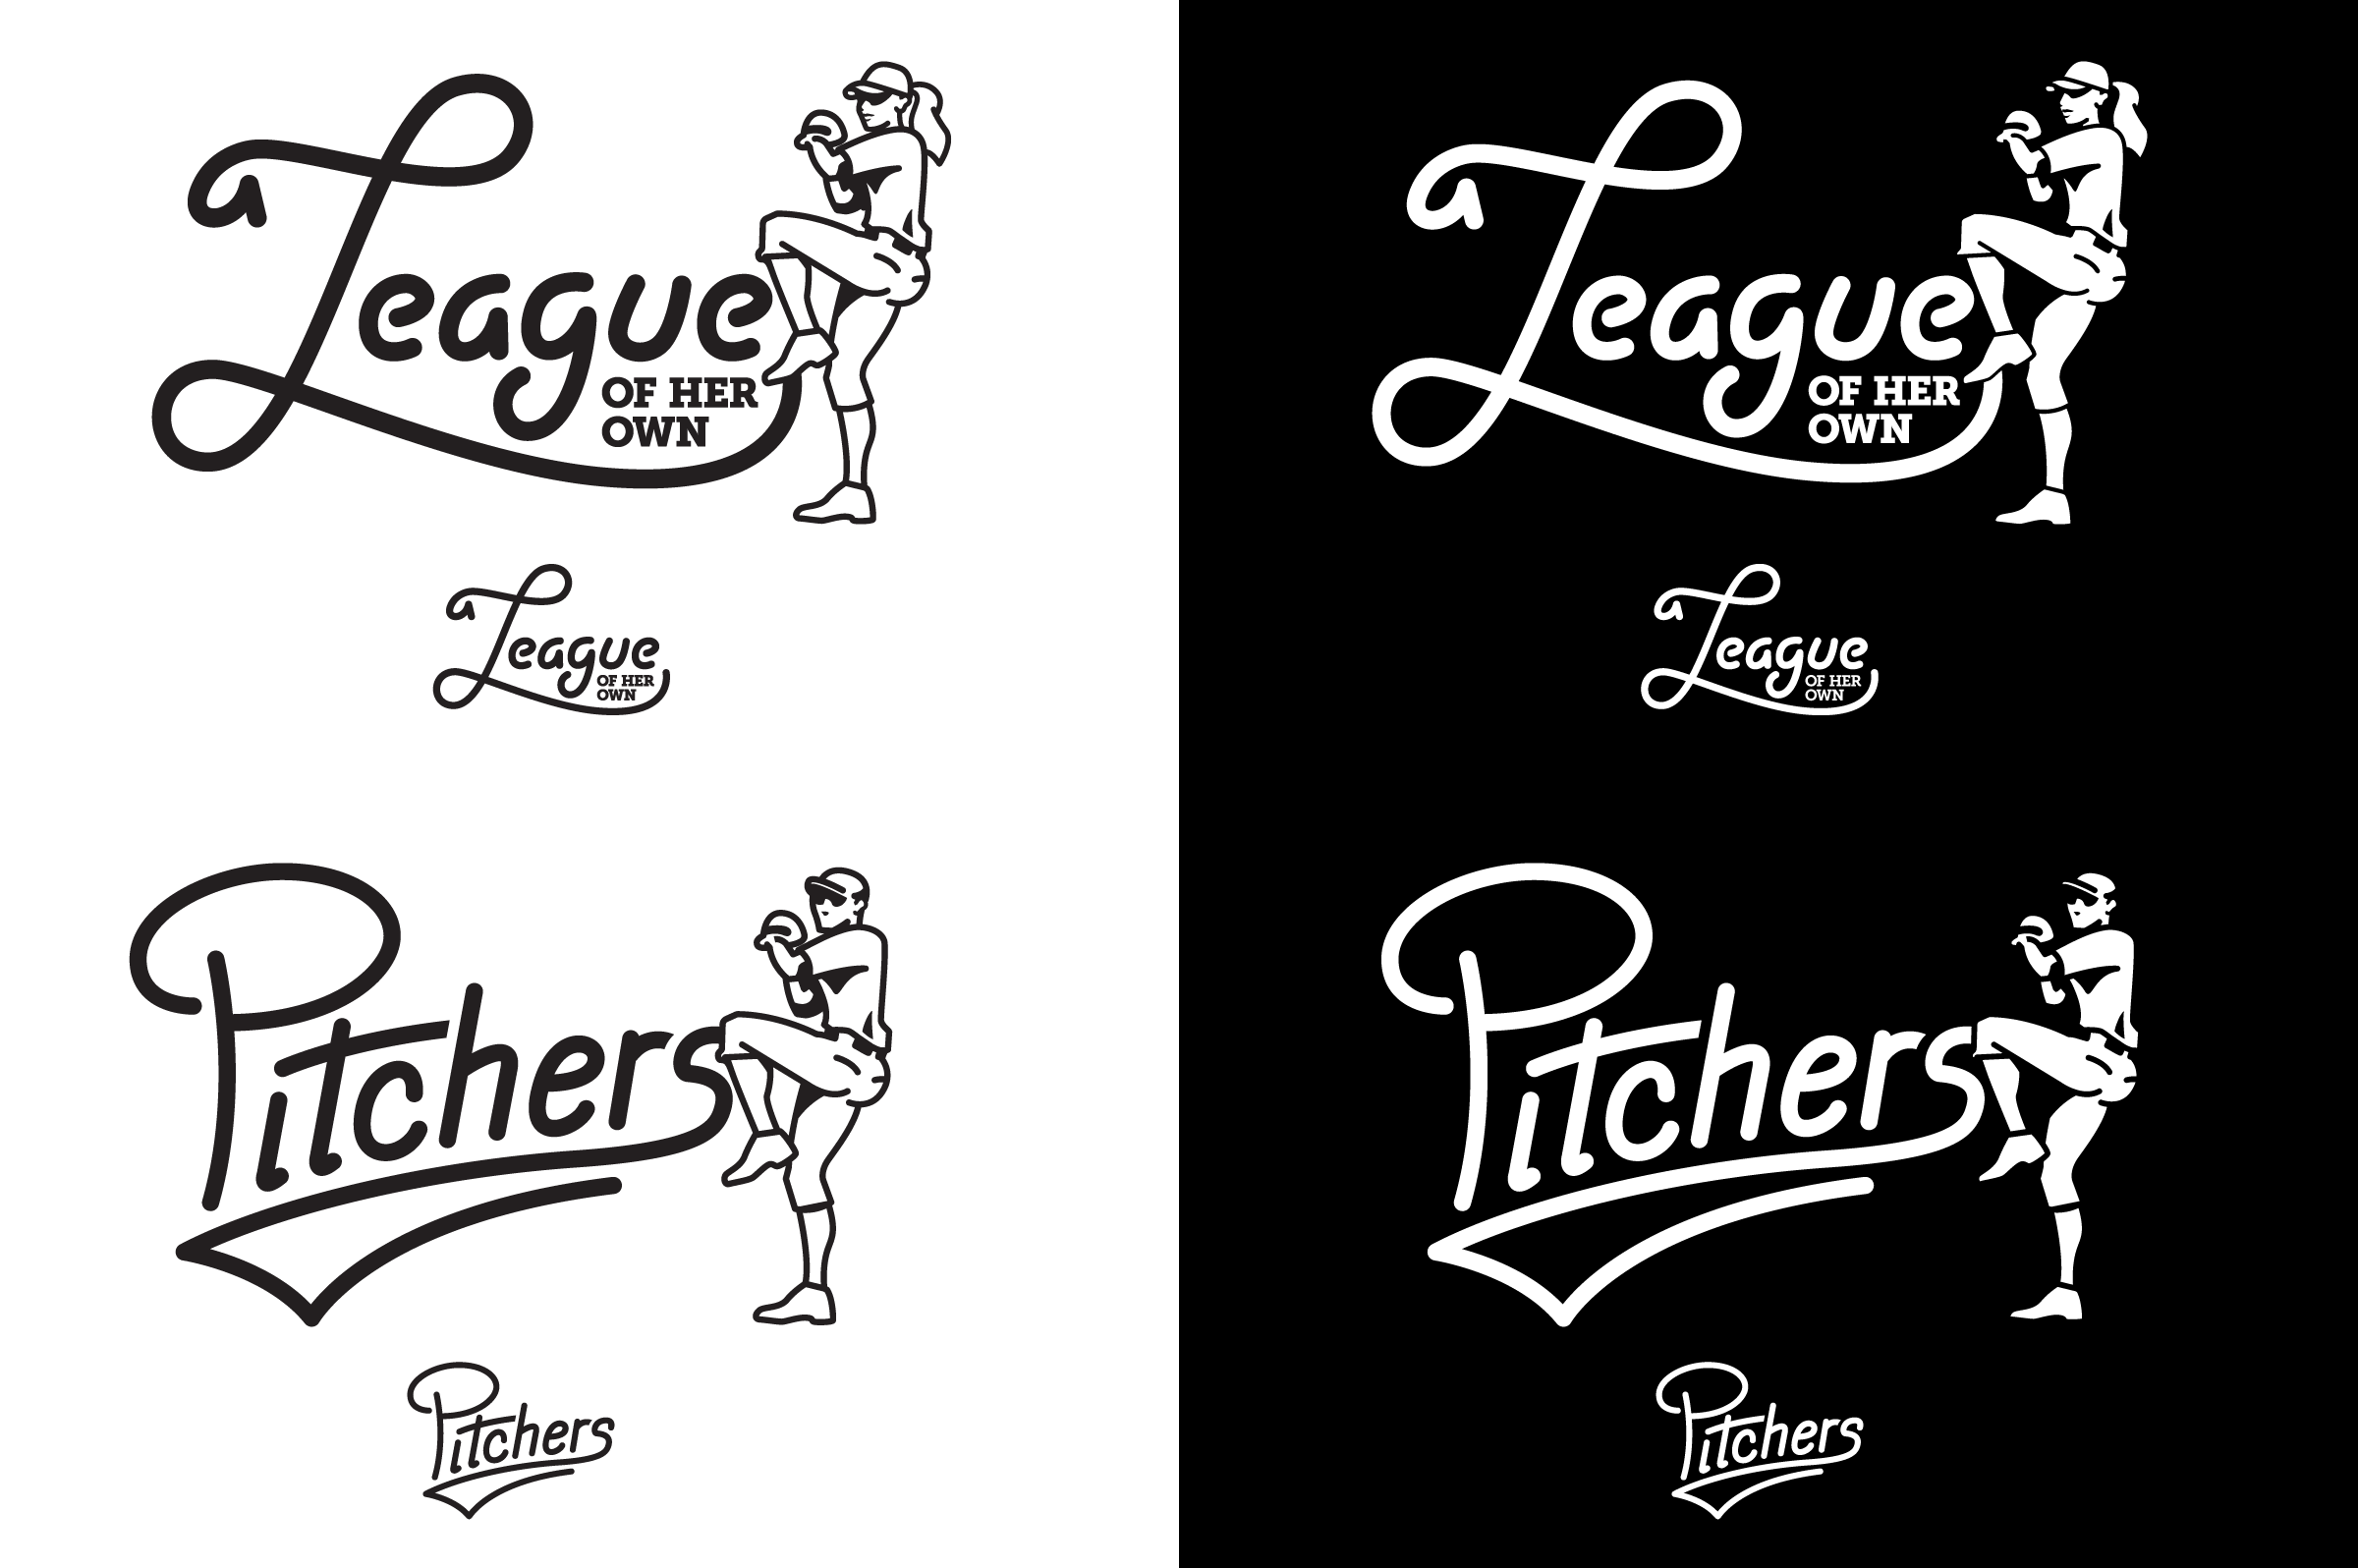 Black and white versions of the Pitchers and League of Her Own logos